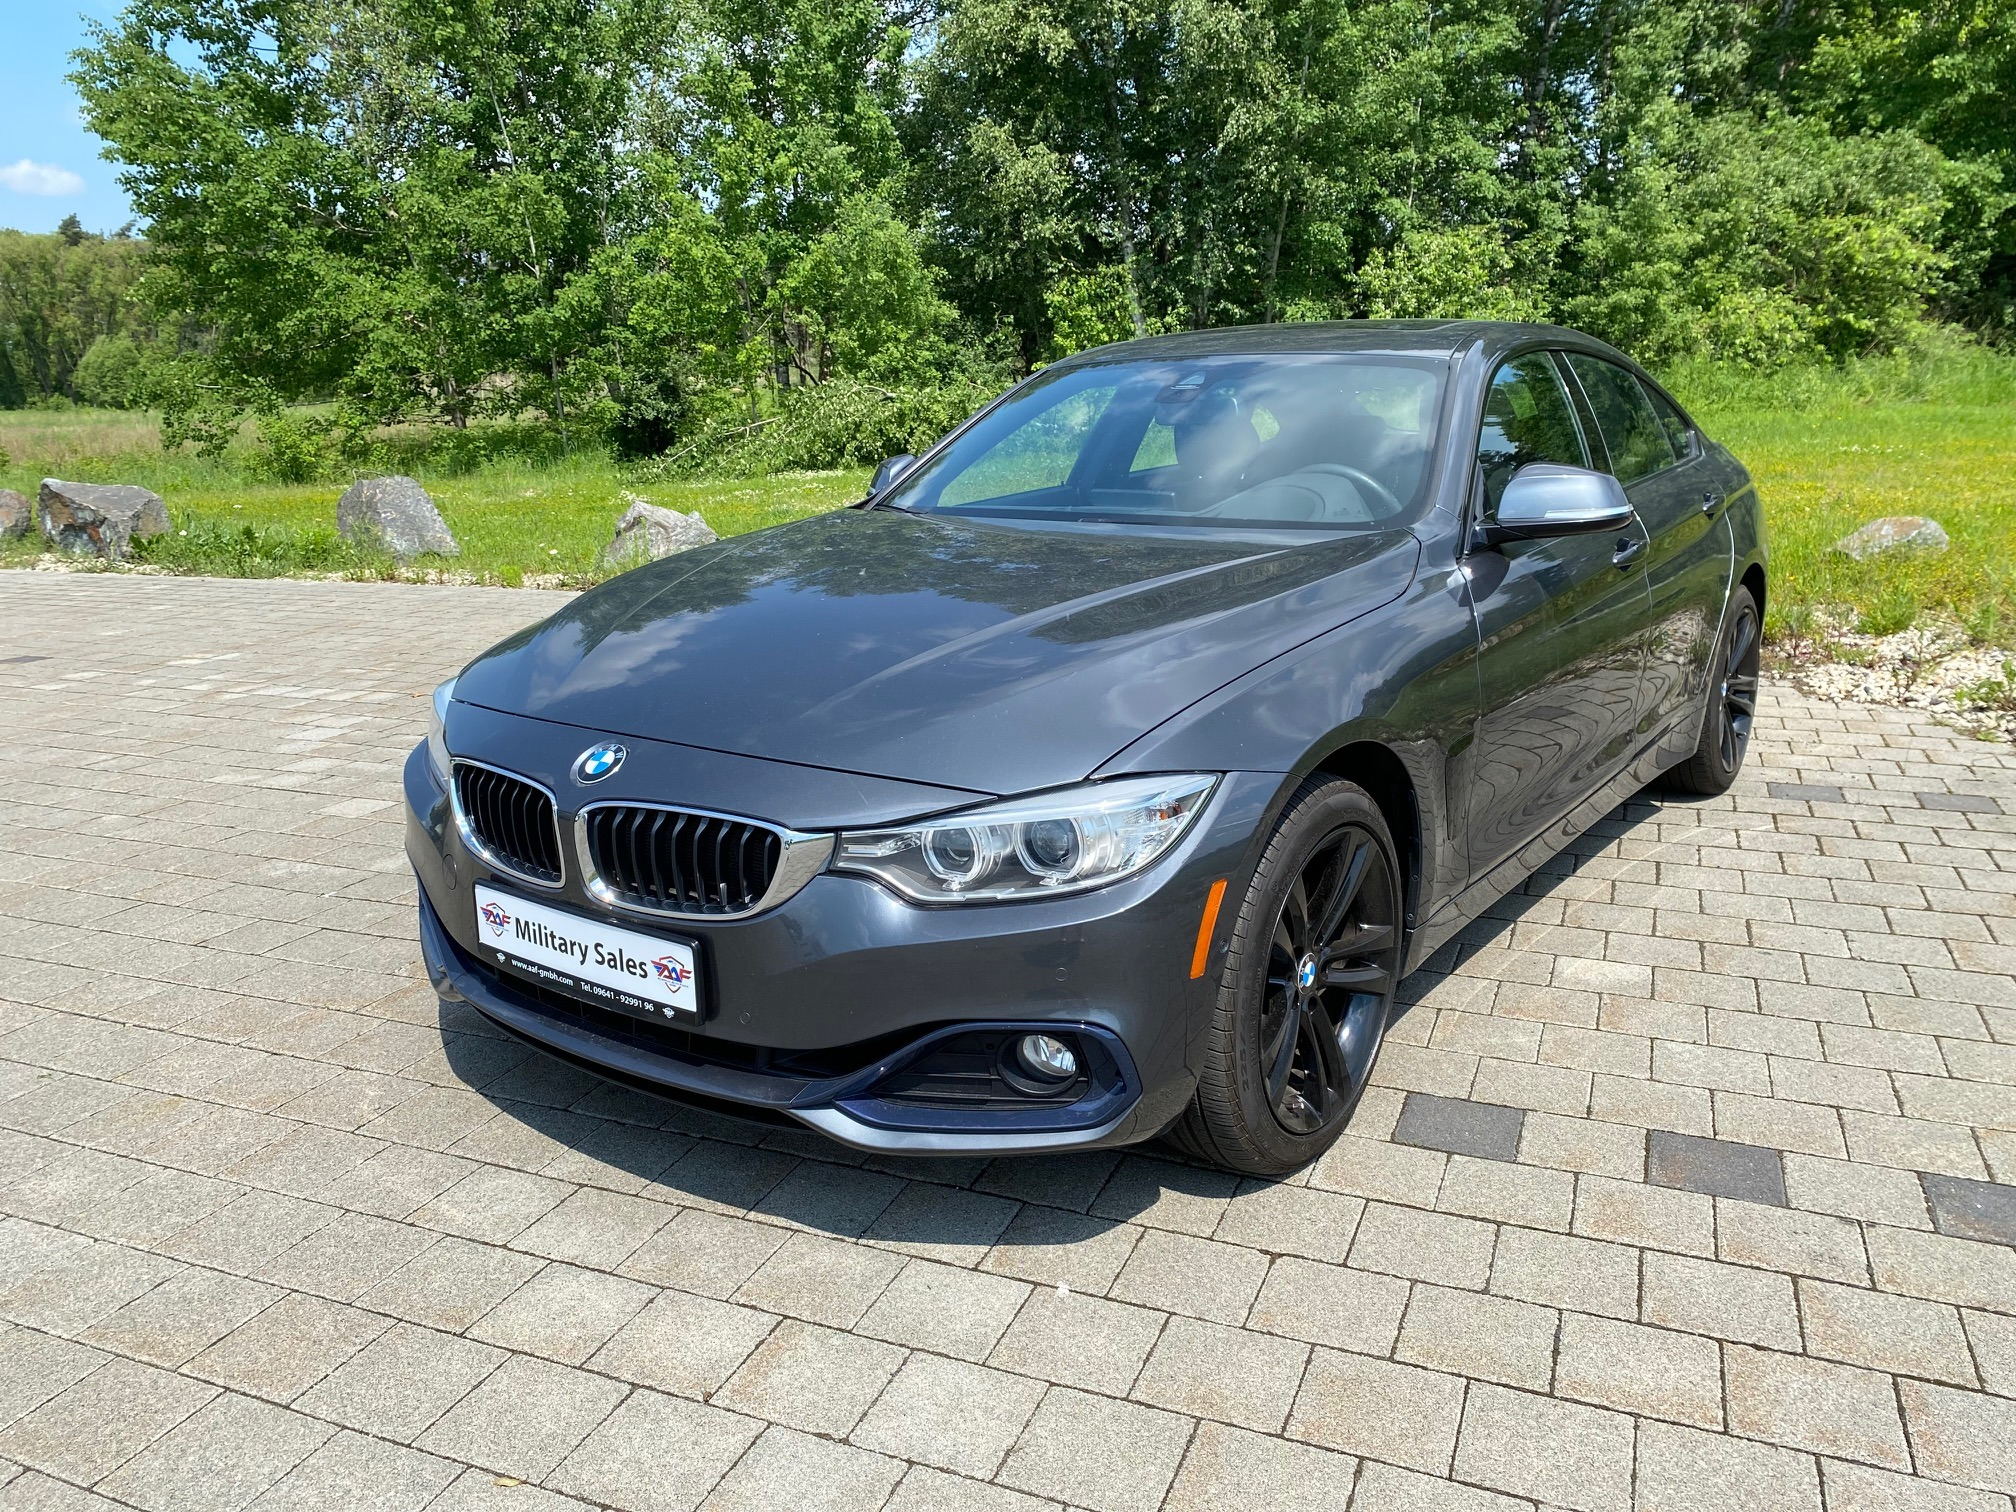 2017 BMW 430i xDrive </br>as low as </br>$219 per paycheck